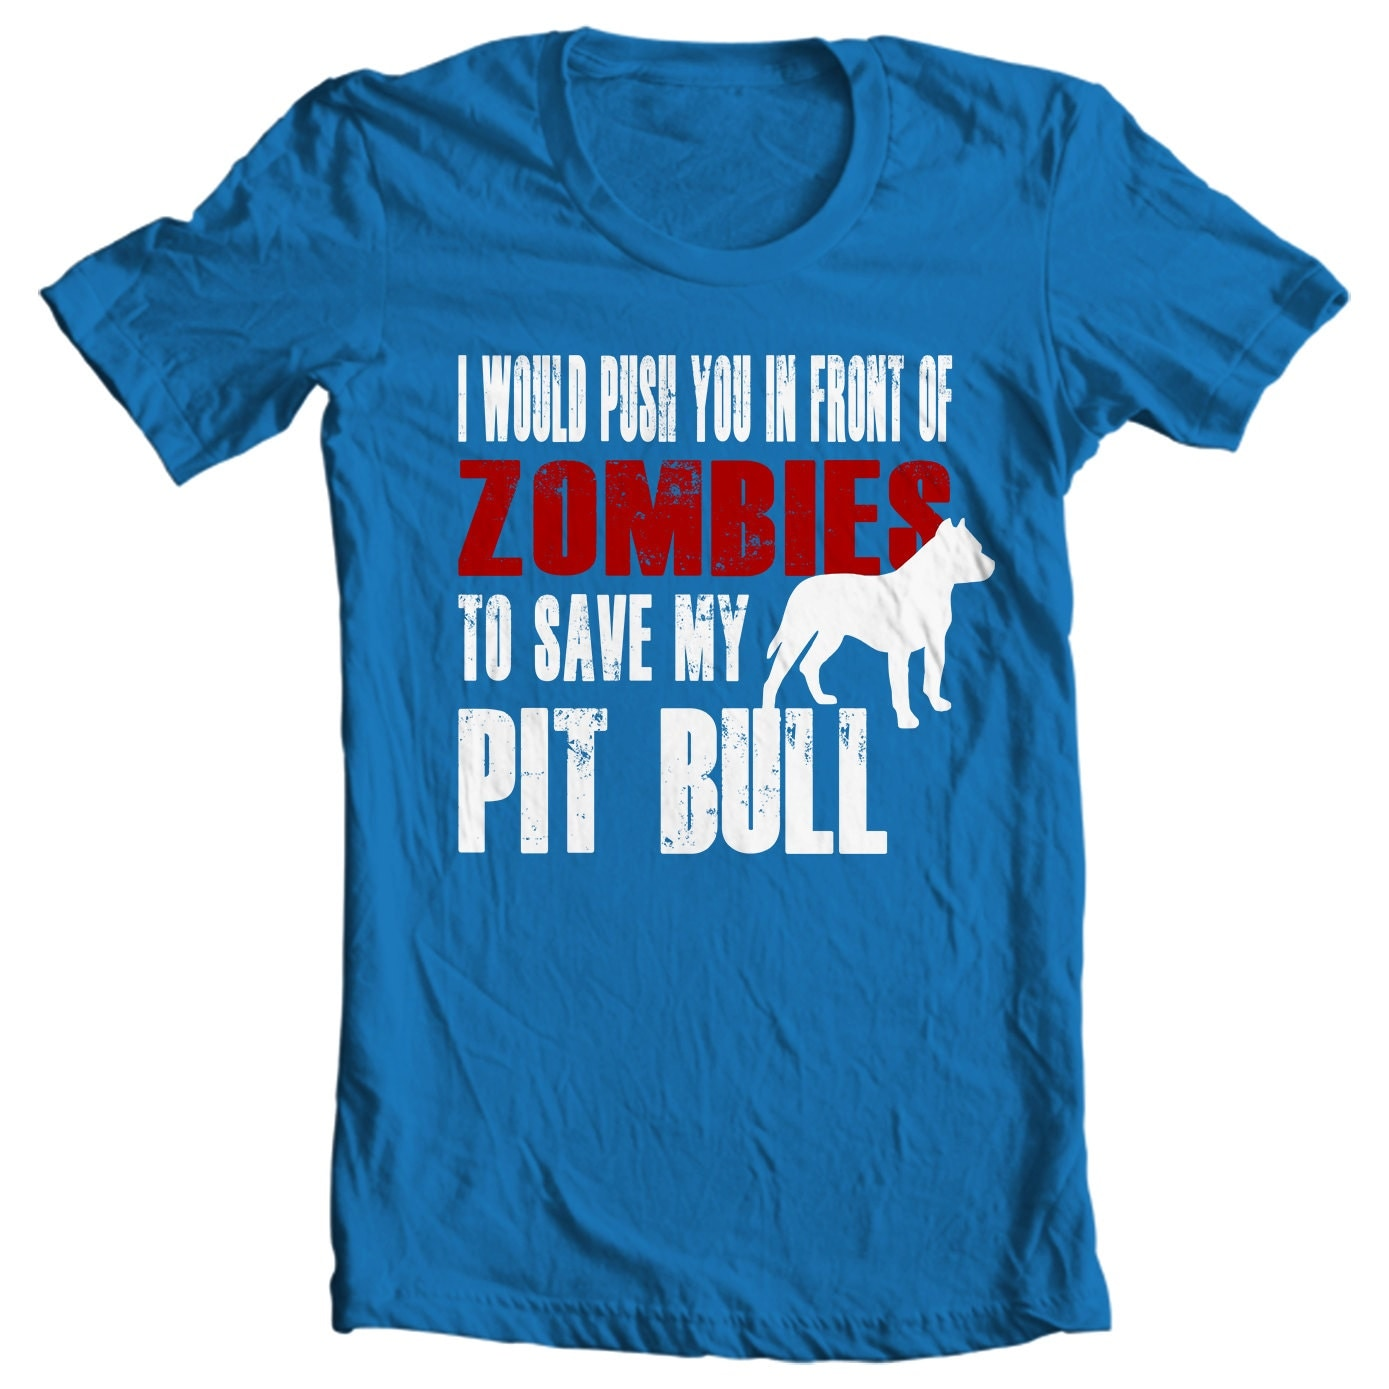 Pit Bull T-shirt - I Would Push You In Front Of Zombies To Save My Pit Bull - My Dog Pit Bull T-shirt